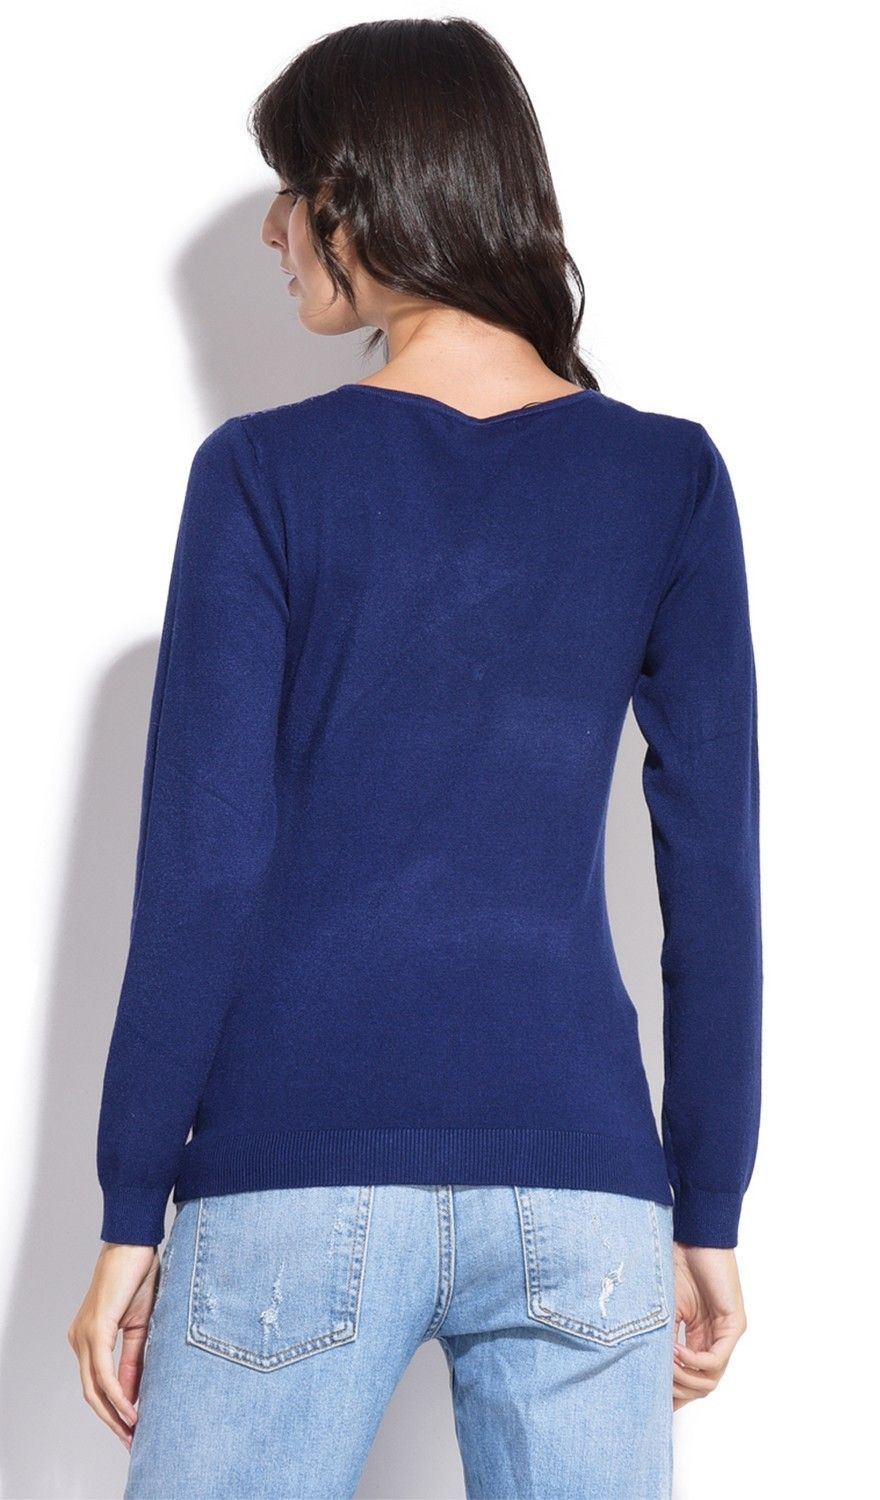 Assuili V-neck Long Sleeve Sweater with Lace in Navy